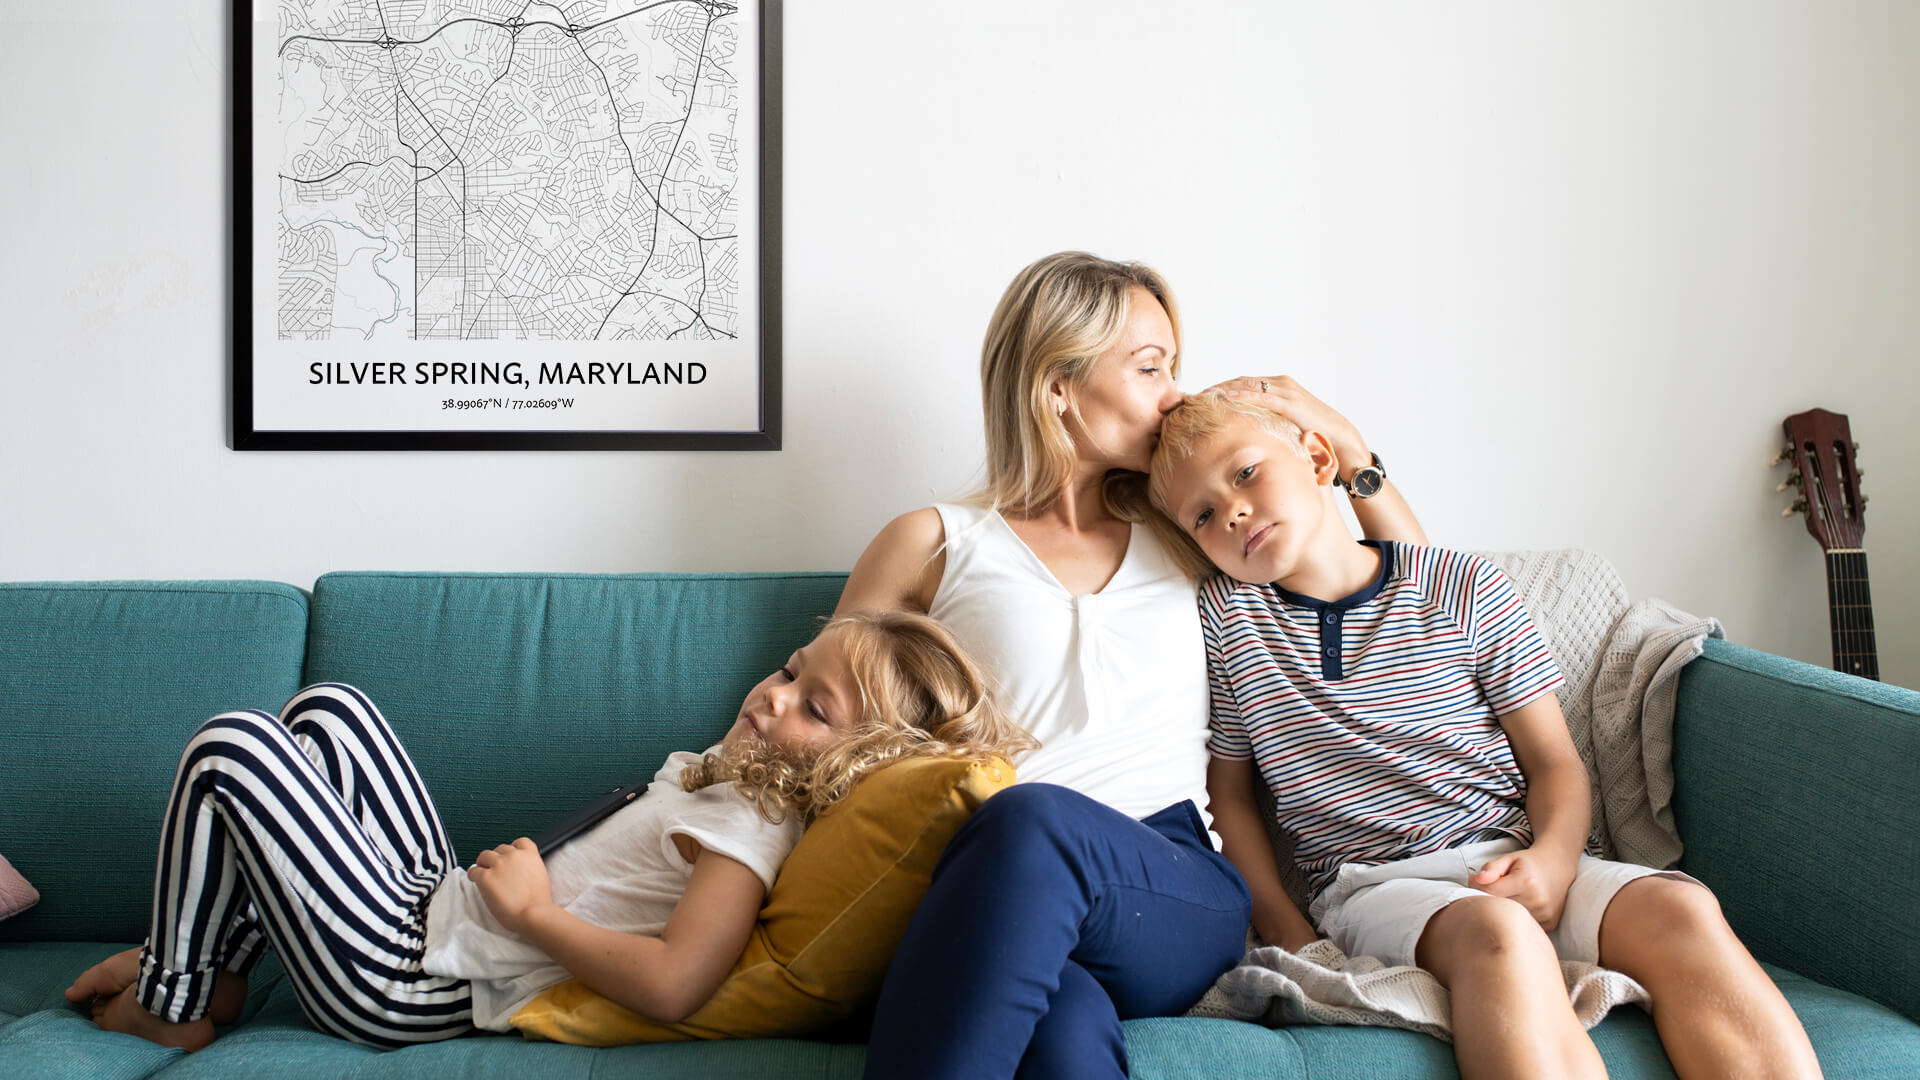 Silver Spring map poster